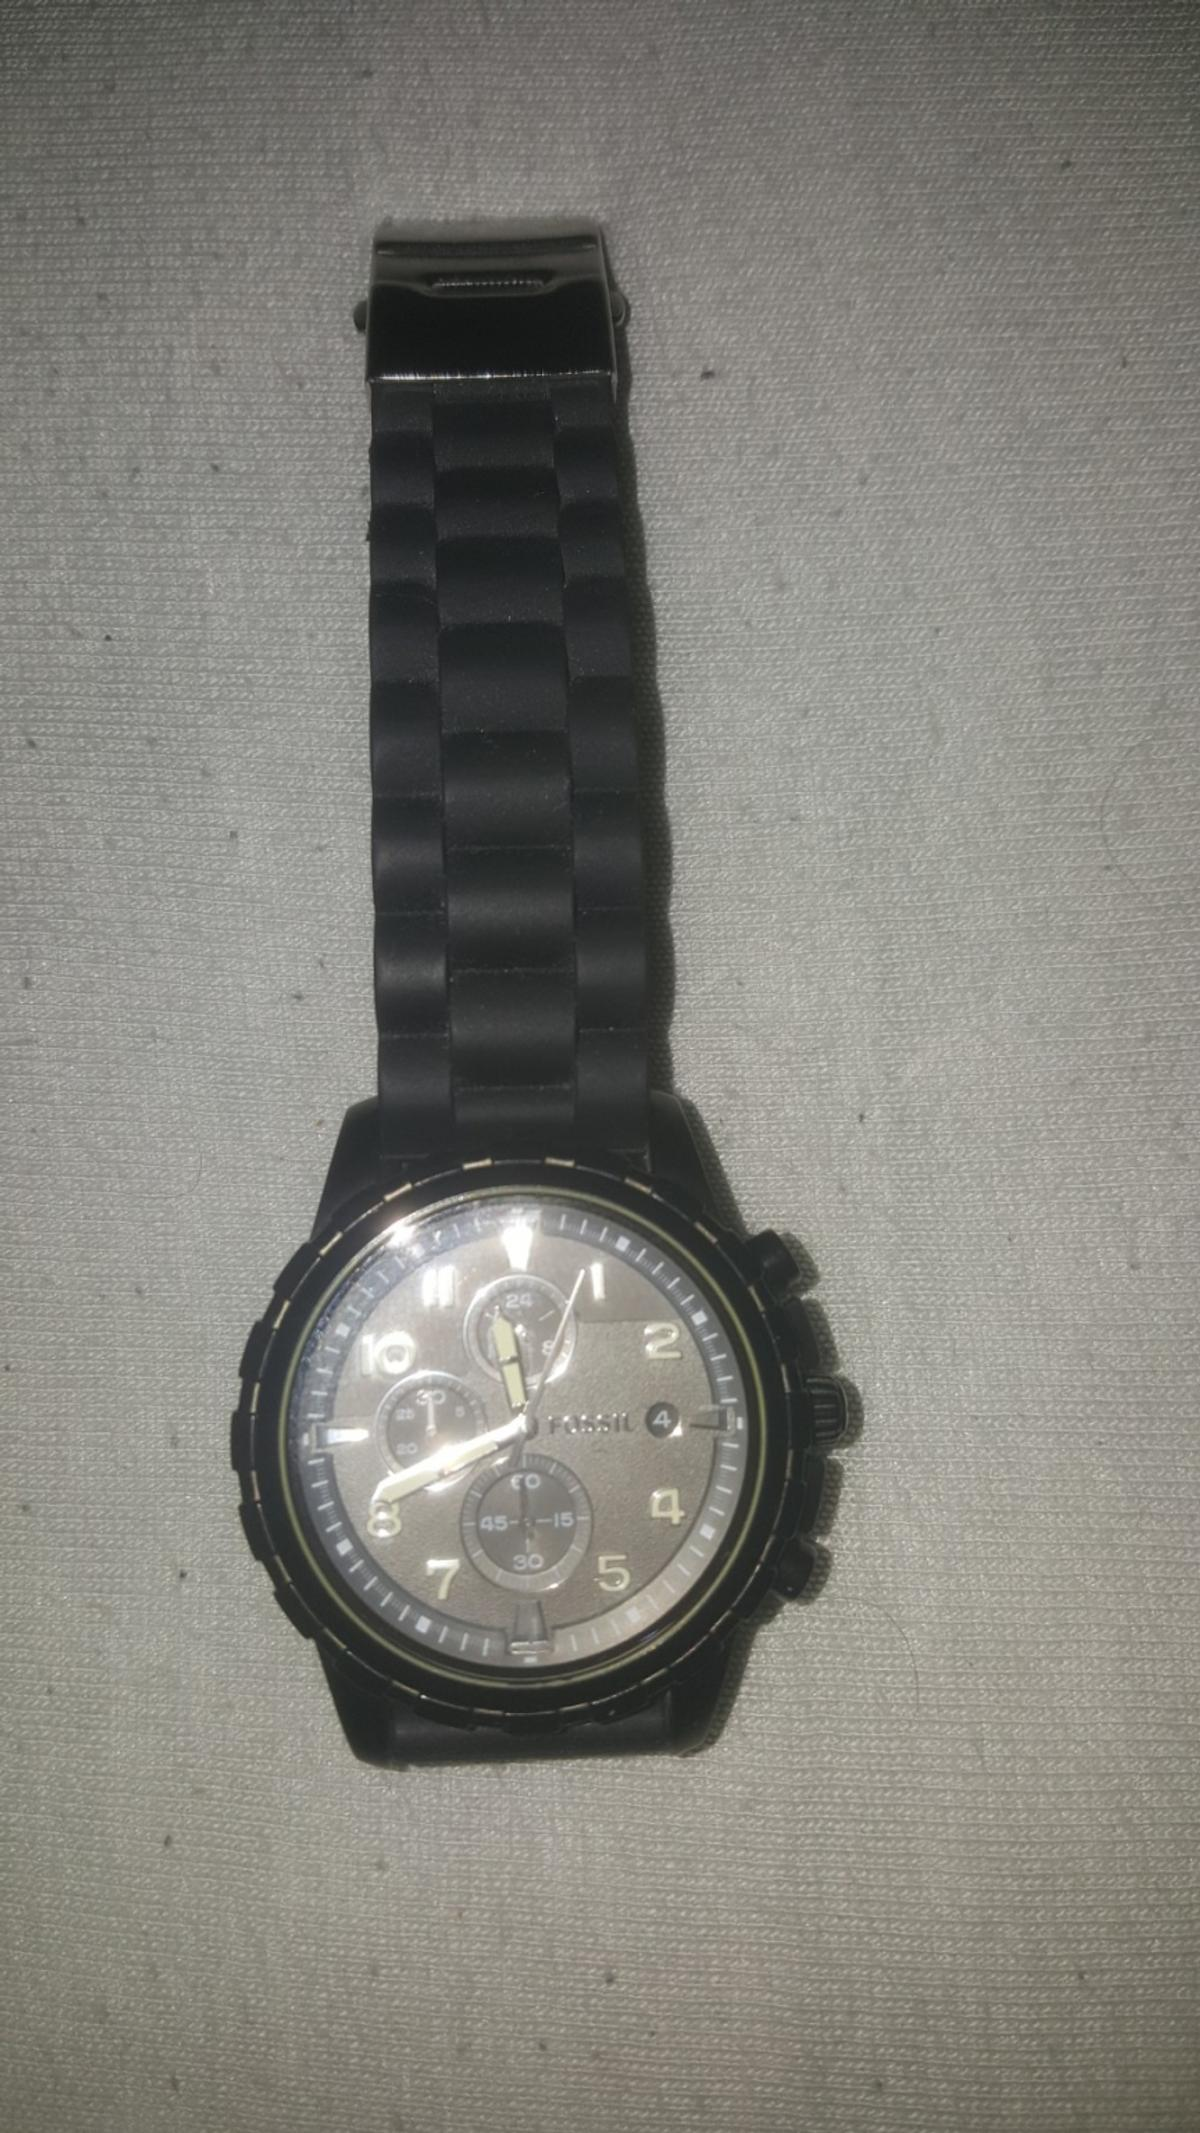 Fossil Fs4544 Chronograph Horloge In 5102ae Dongen For